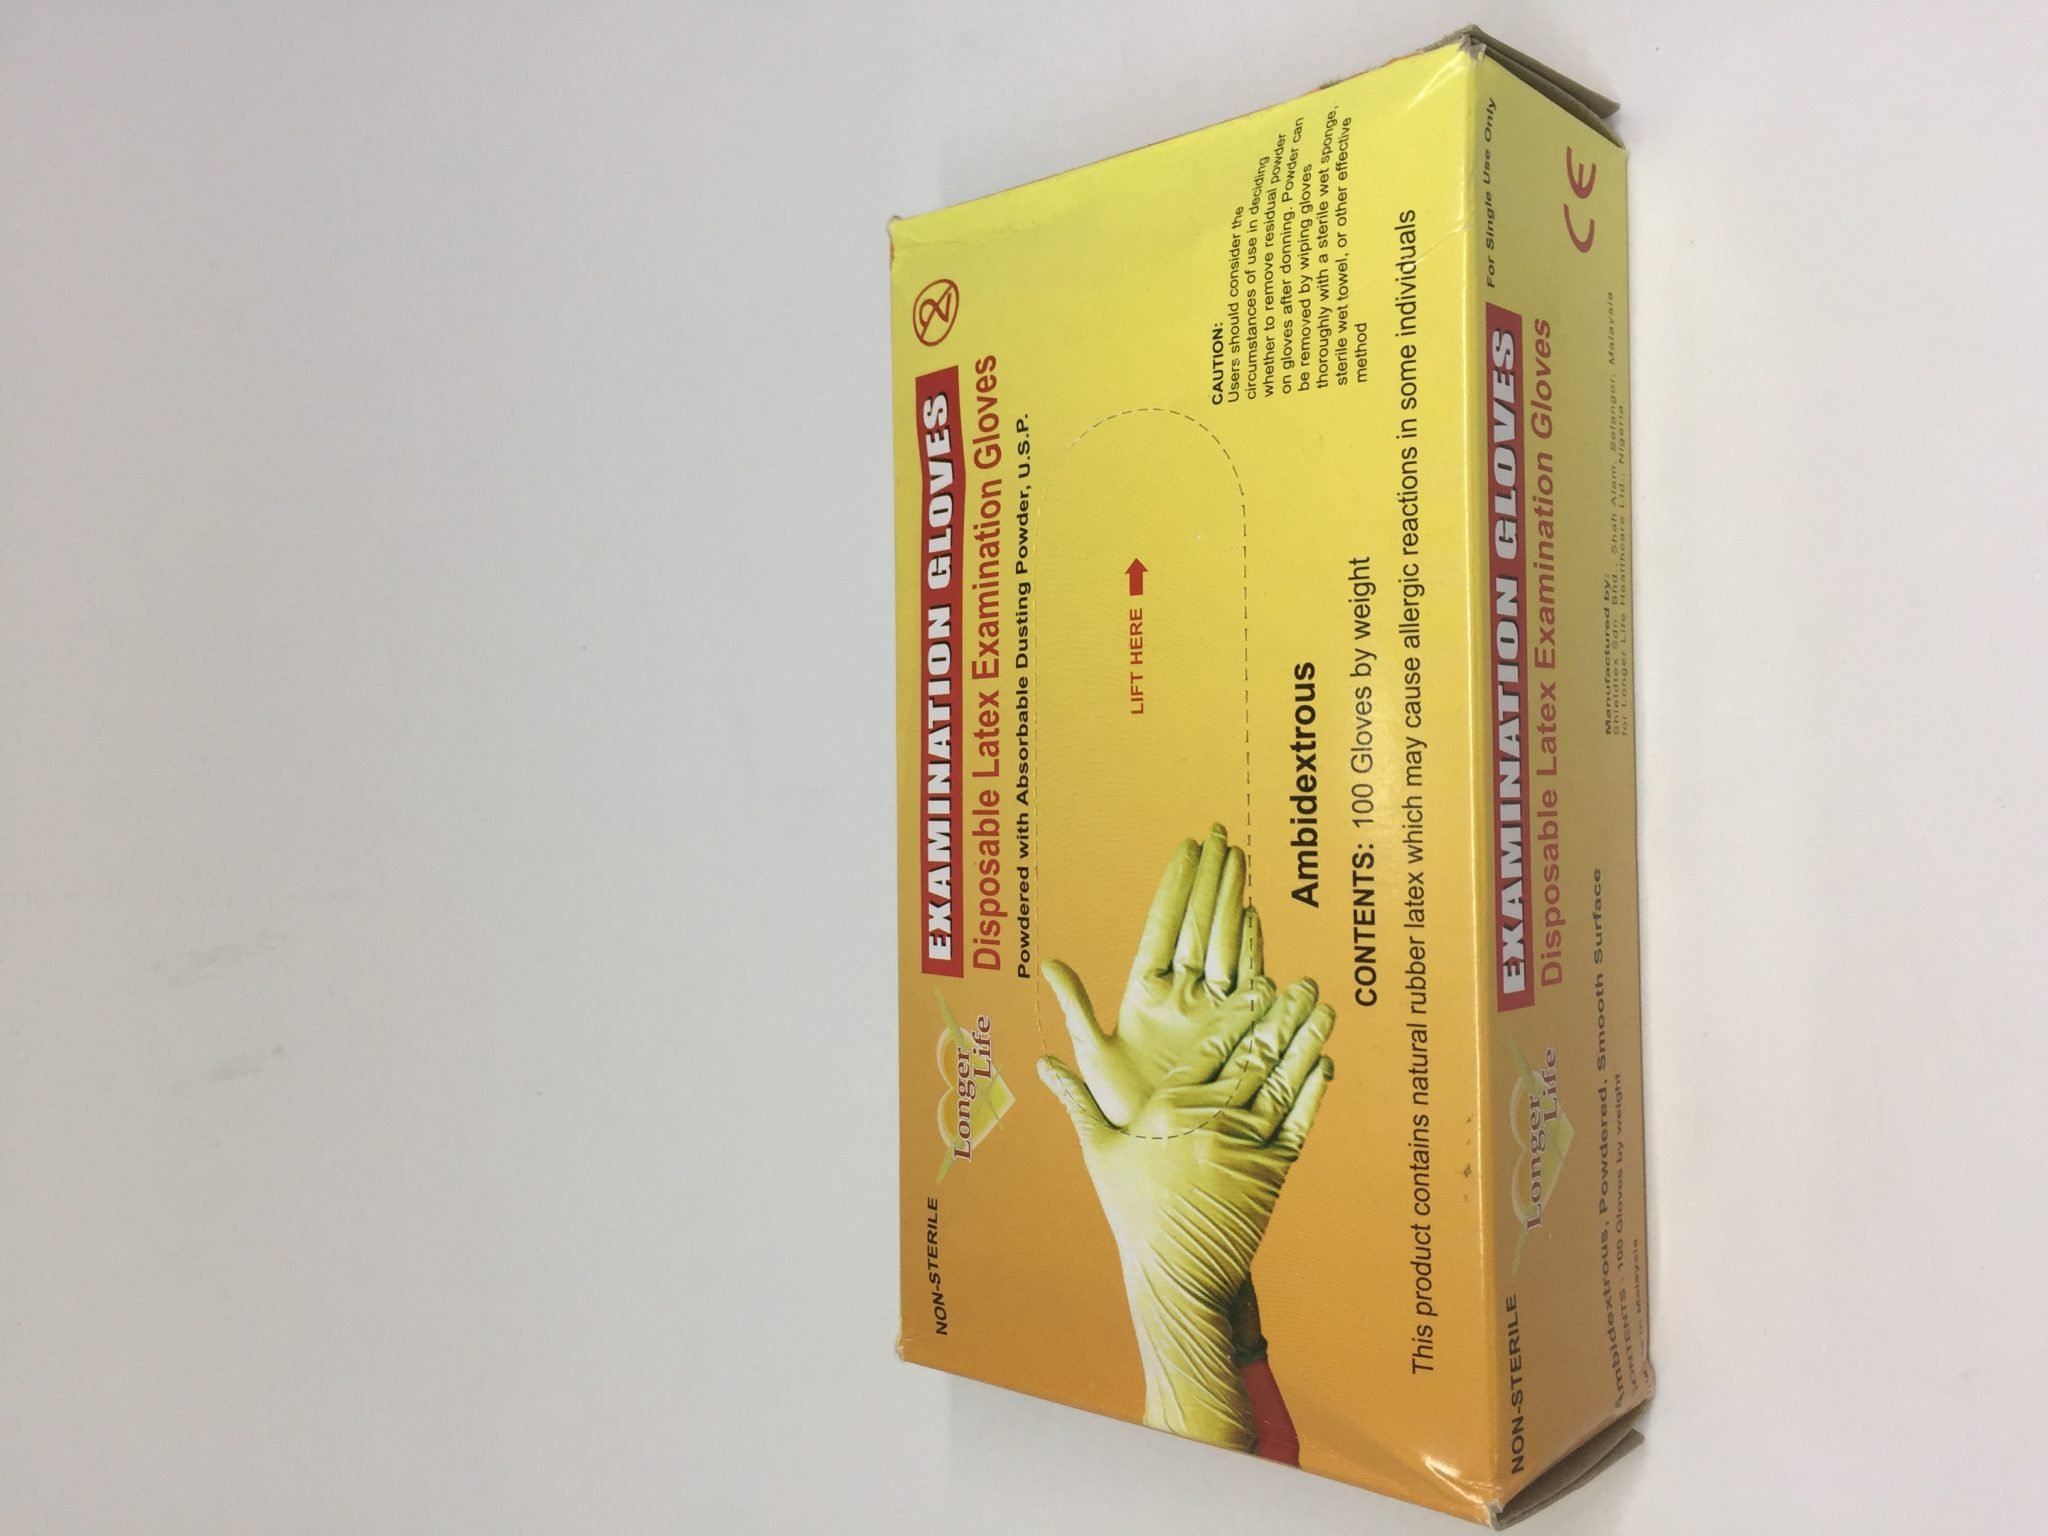 Disposable Latex Examination Gloves now available in Nigeria. Place your order on Clinicaid.com.ng now.